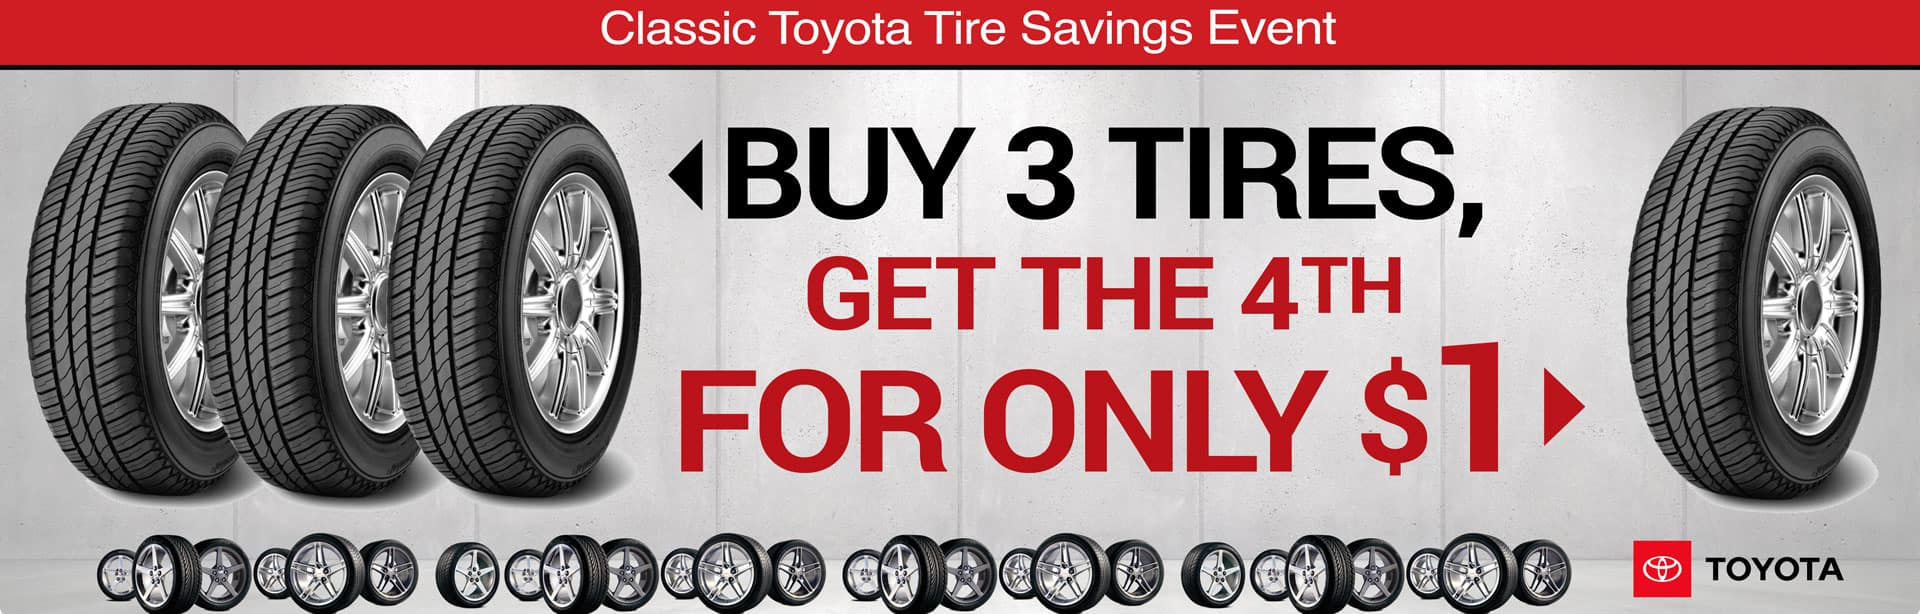 toyota-service-(buy-3-get-4th-for-$1)-TIRE-DEAL-10'1-31'21-WEB-HOME-SLIDER-BANNER-1920×614